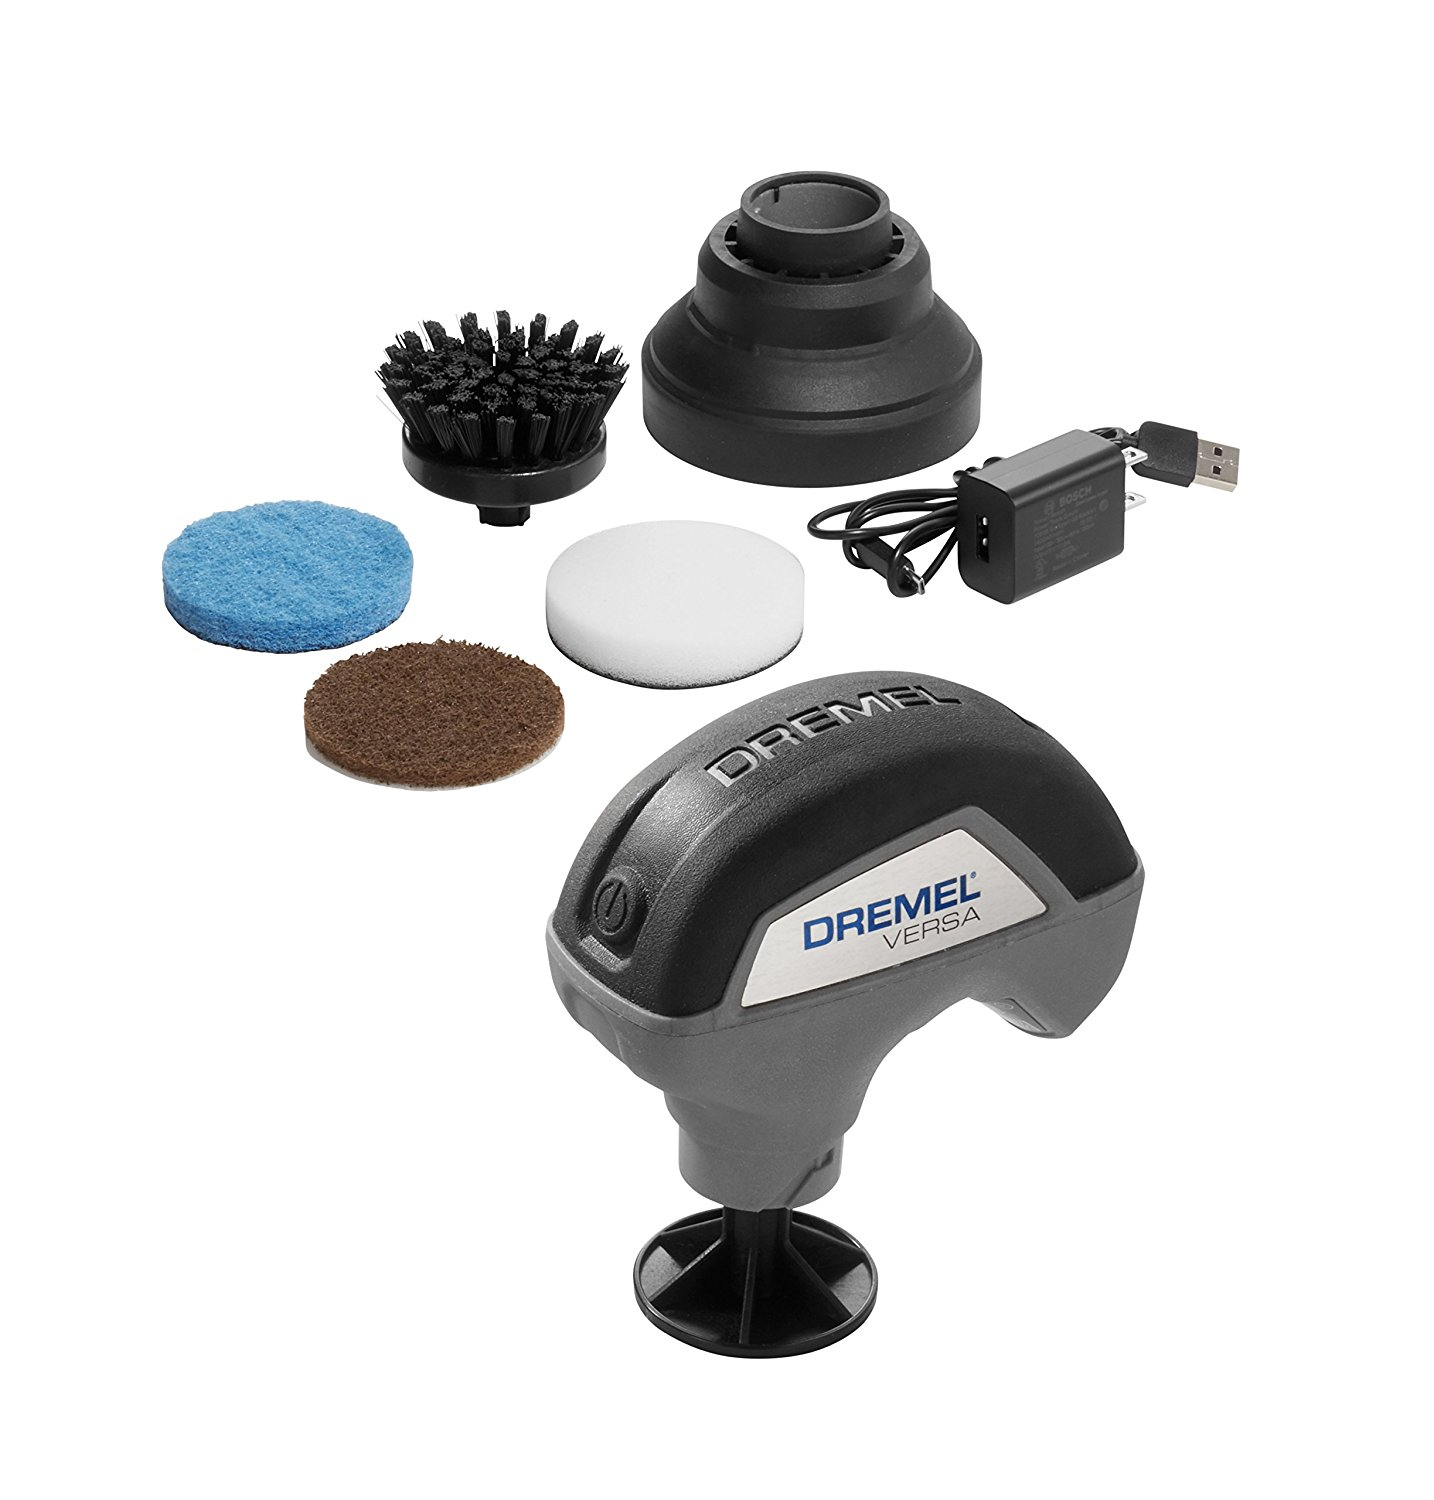 Dremel PC10-01 Versa 4V Max Power Cleaner Kit